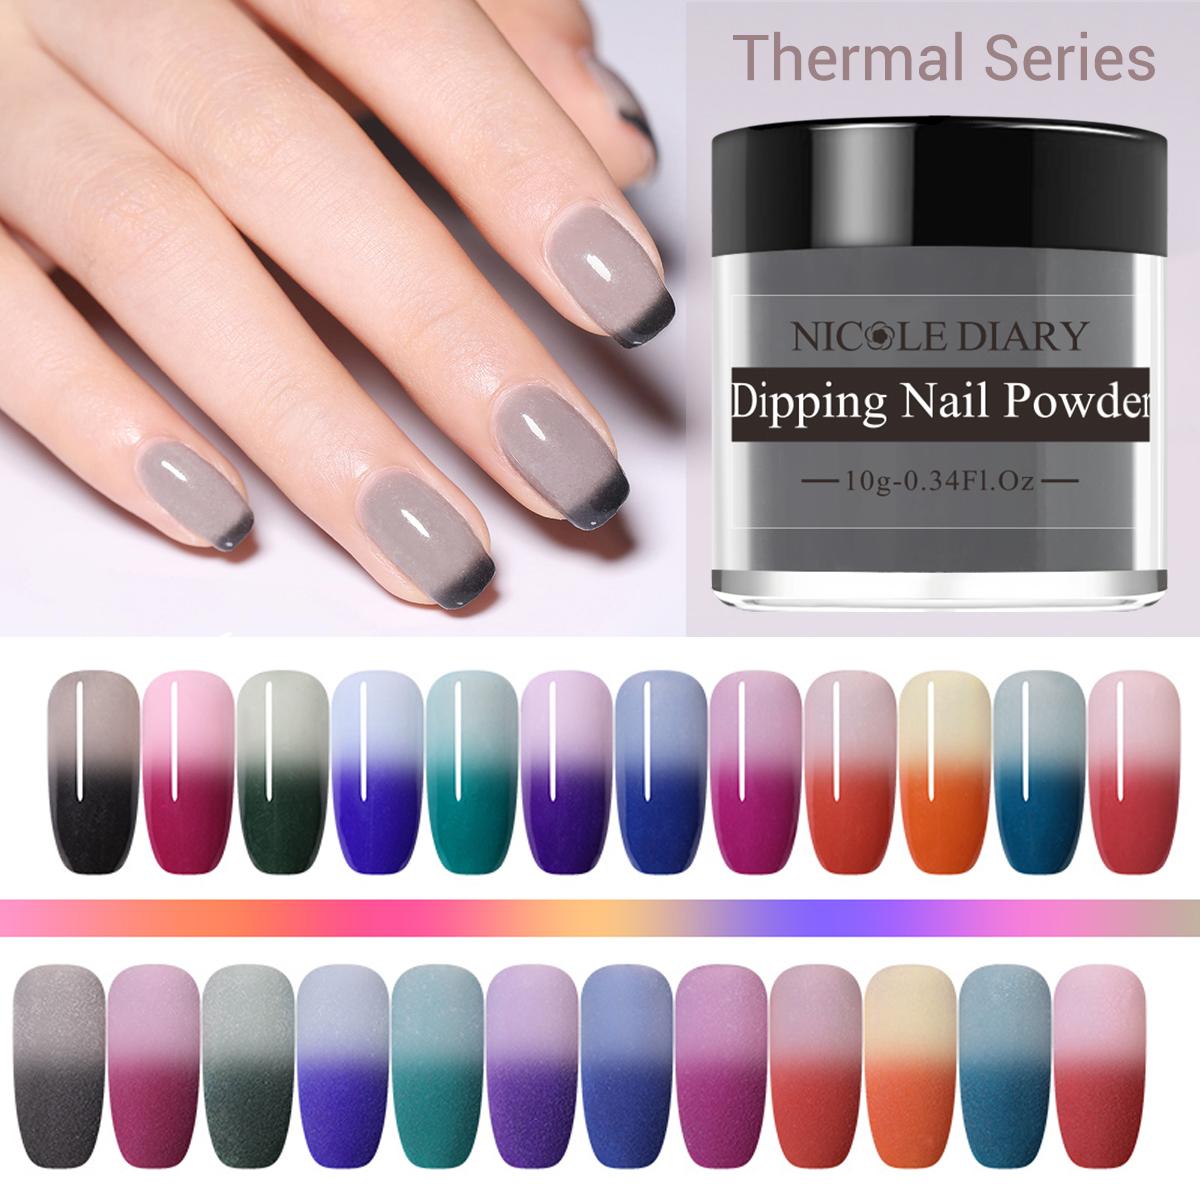 NICOLE DIARY 10g Thermal Dipping Nail Powder Gradient Color Changing Dipping Nail Glitter Pigment Dust Natural Dry Decoration-in Nail Glitter from Beauty & Health